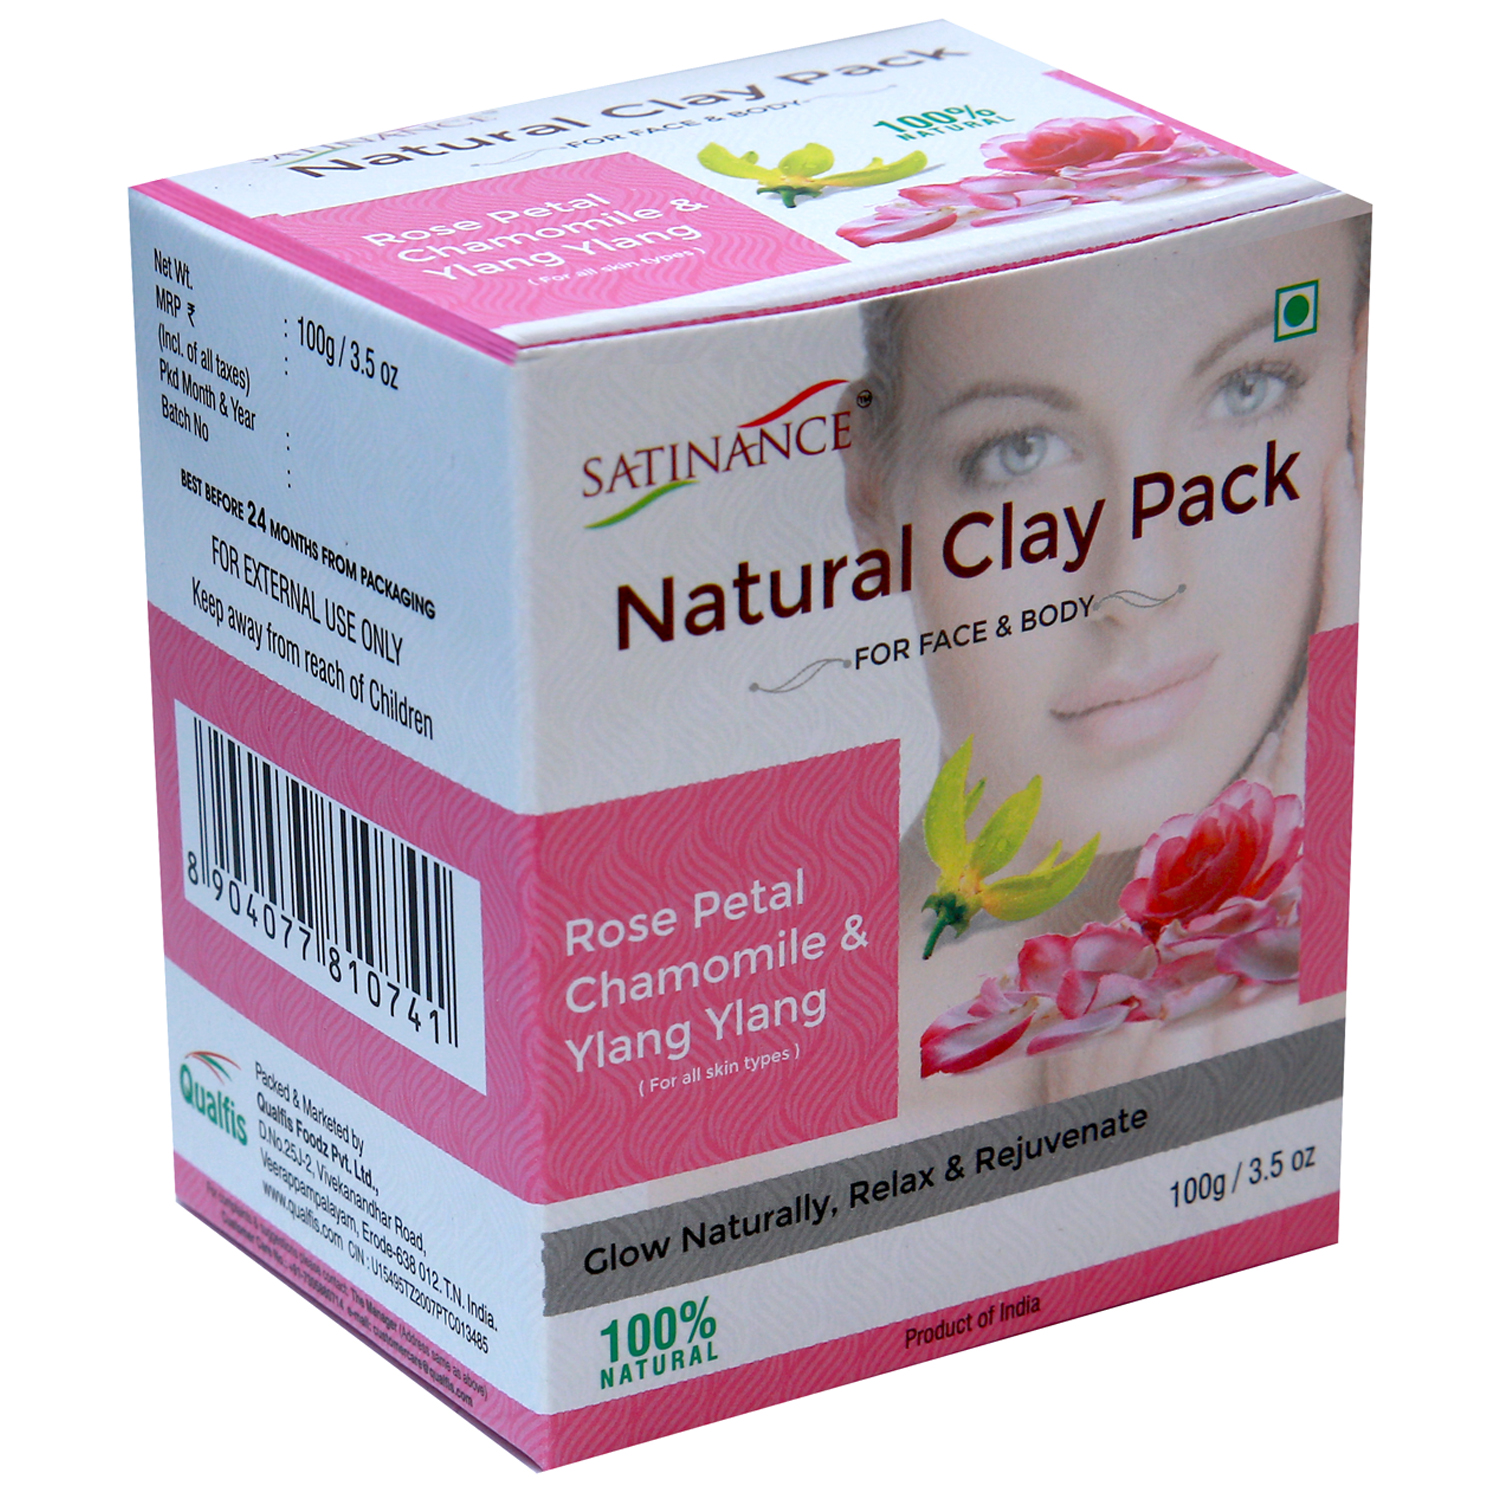 Satinance Natural Clay Pack Rose Petal, Chamomile & Ylang Ylang 100g (Glow Naturally, Relax & Rejuvenate)